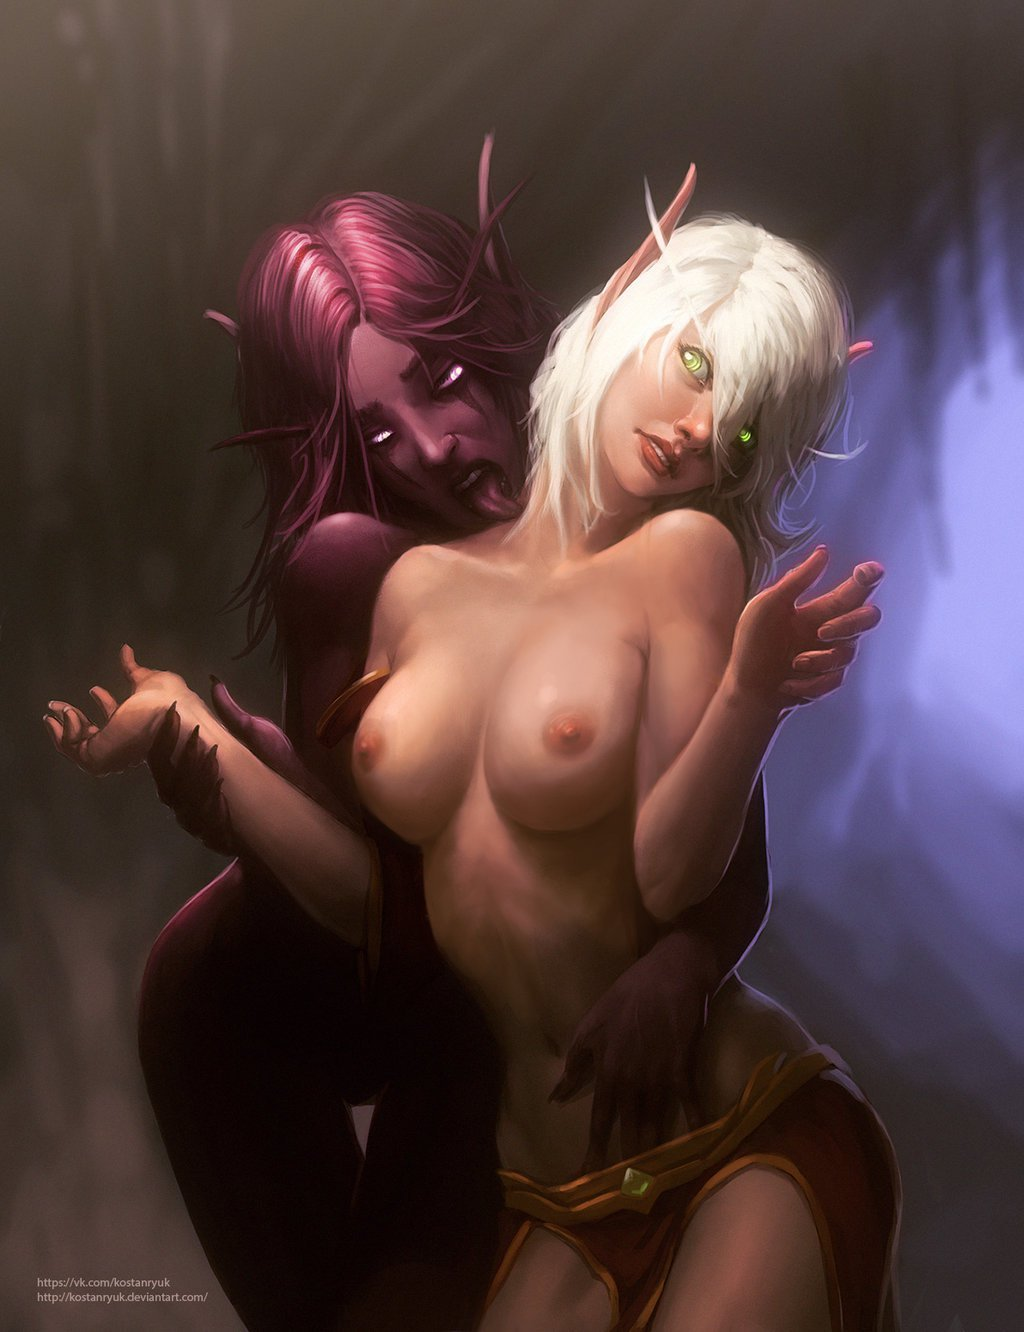 World of warcraft bdsm erotica adult streaming